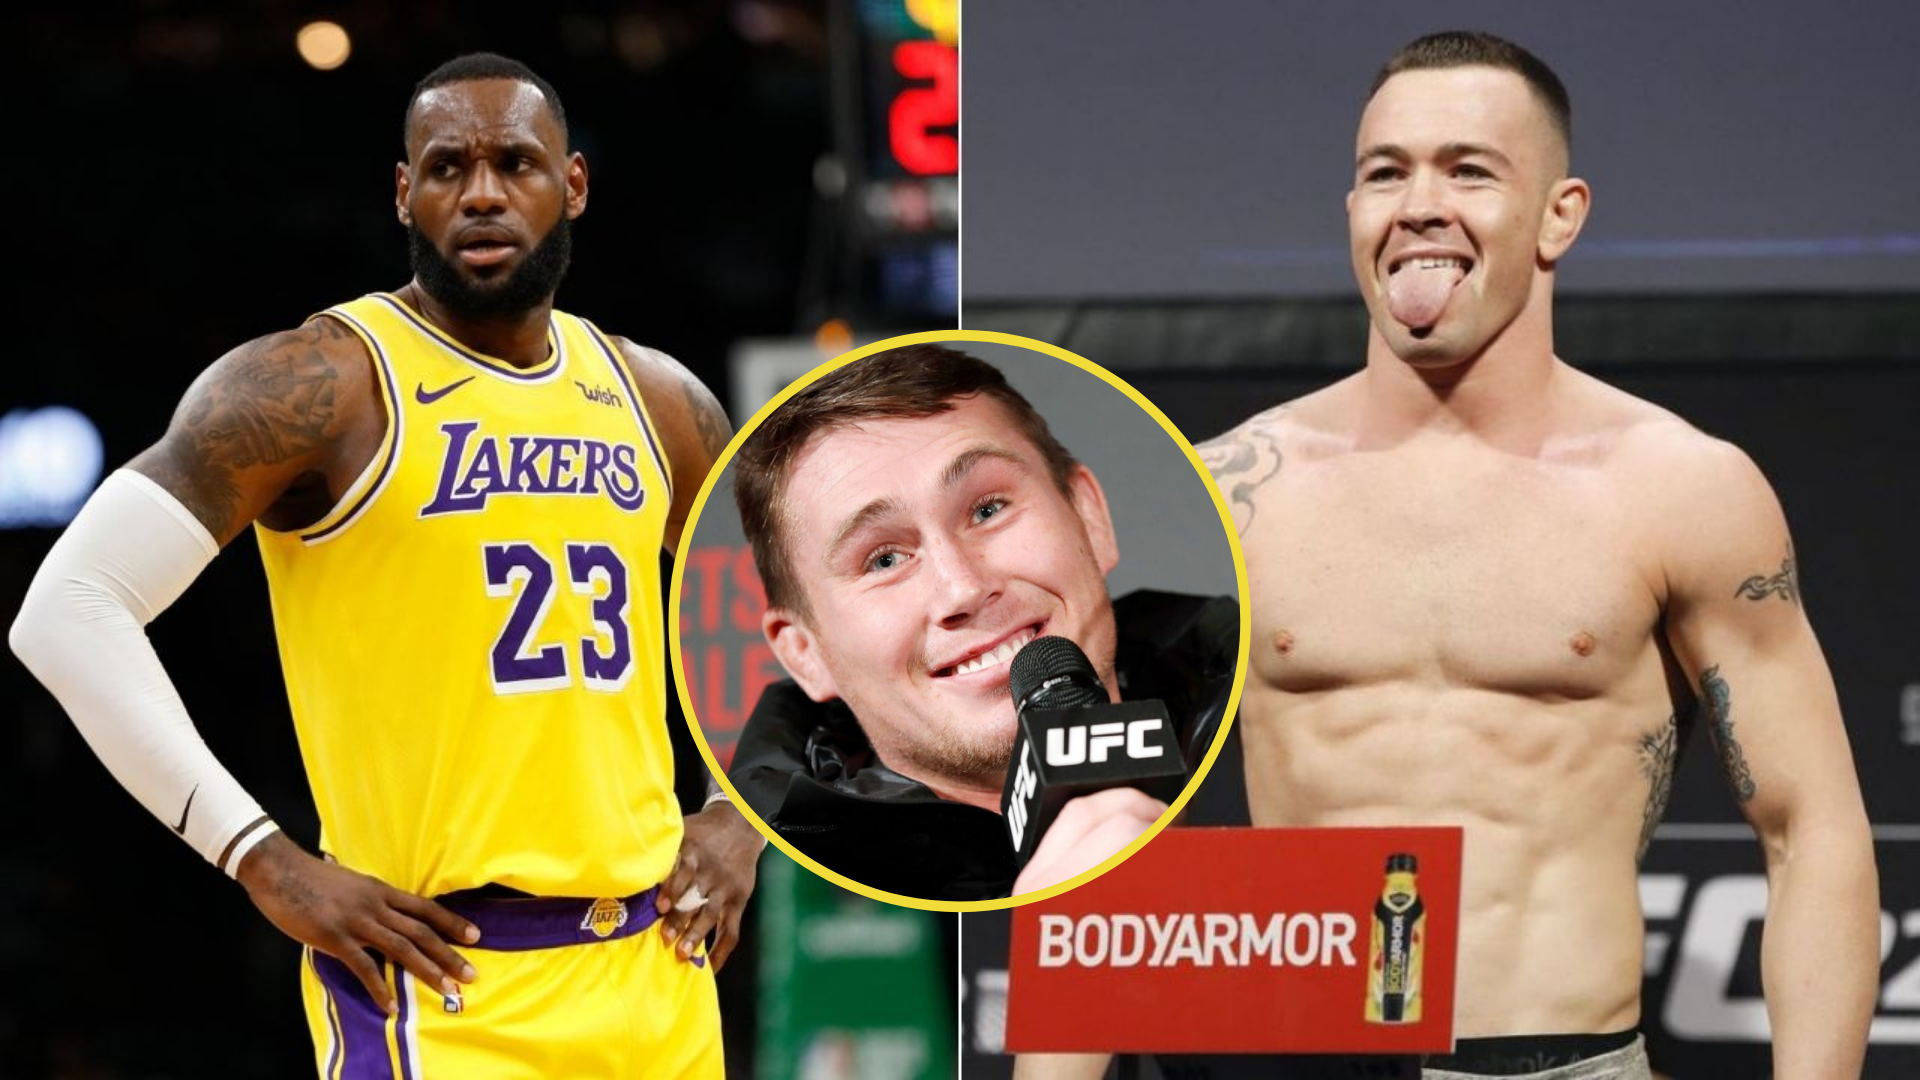 Darren Till supports Covington's claim of LeBron James not lasting even 10 seconds with him in a fight - Covington